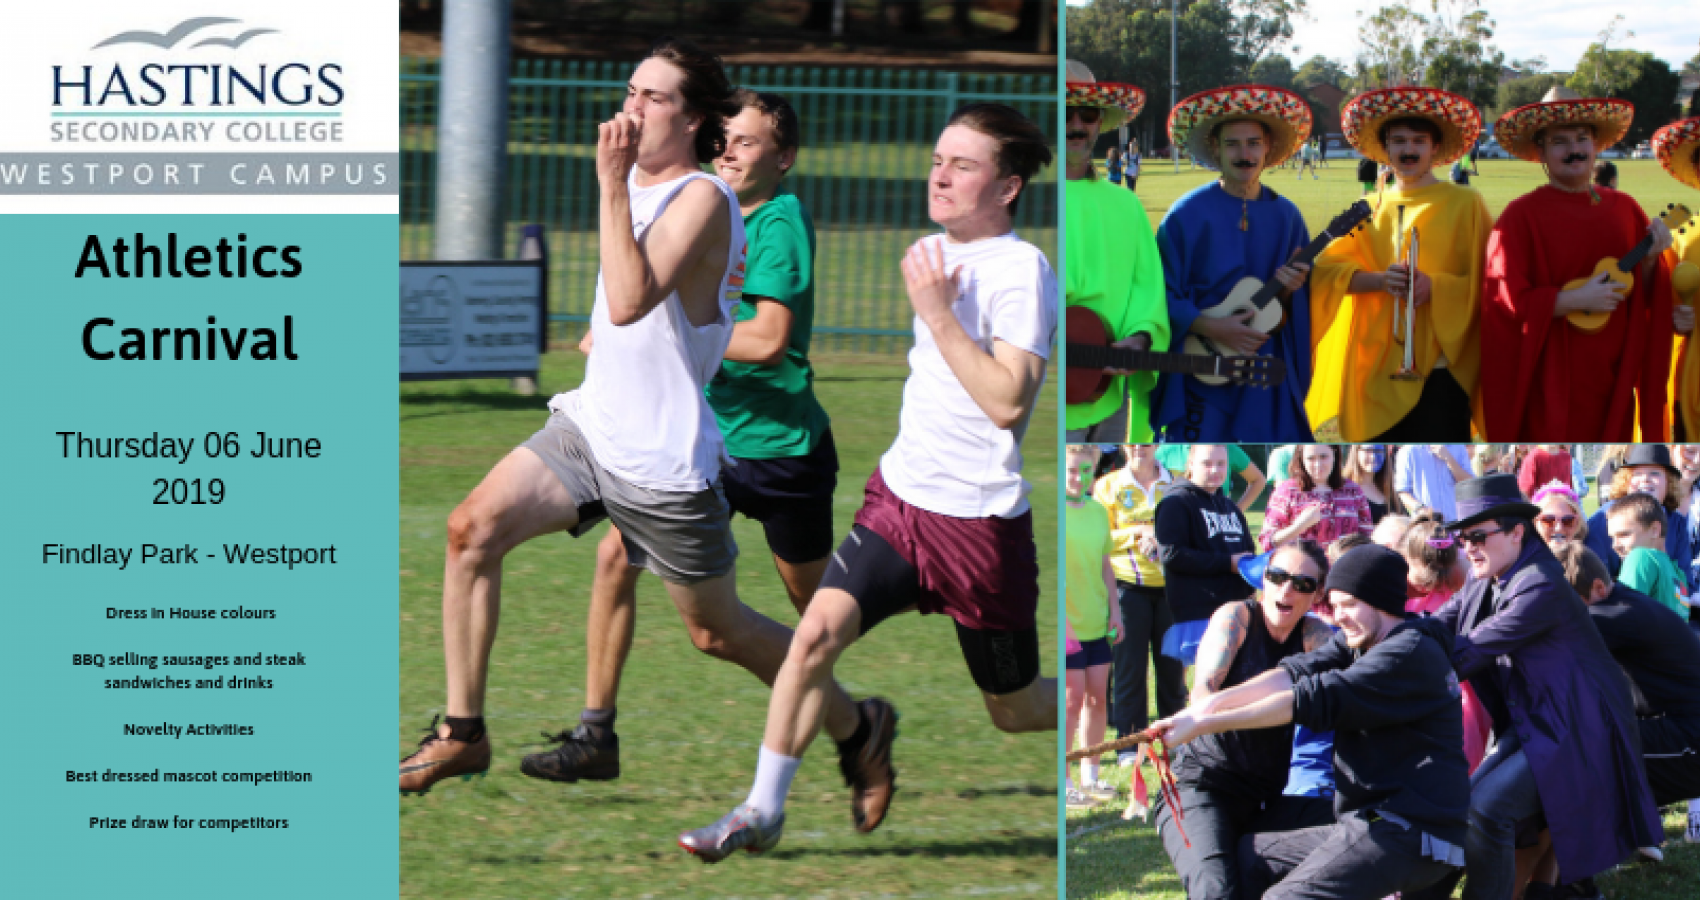 Westport Campus Athletics Carnival 2019